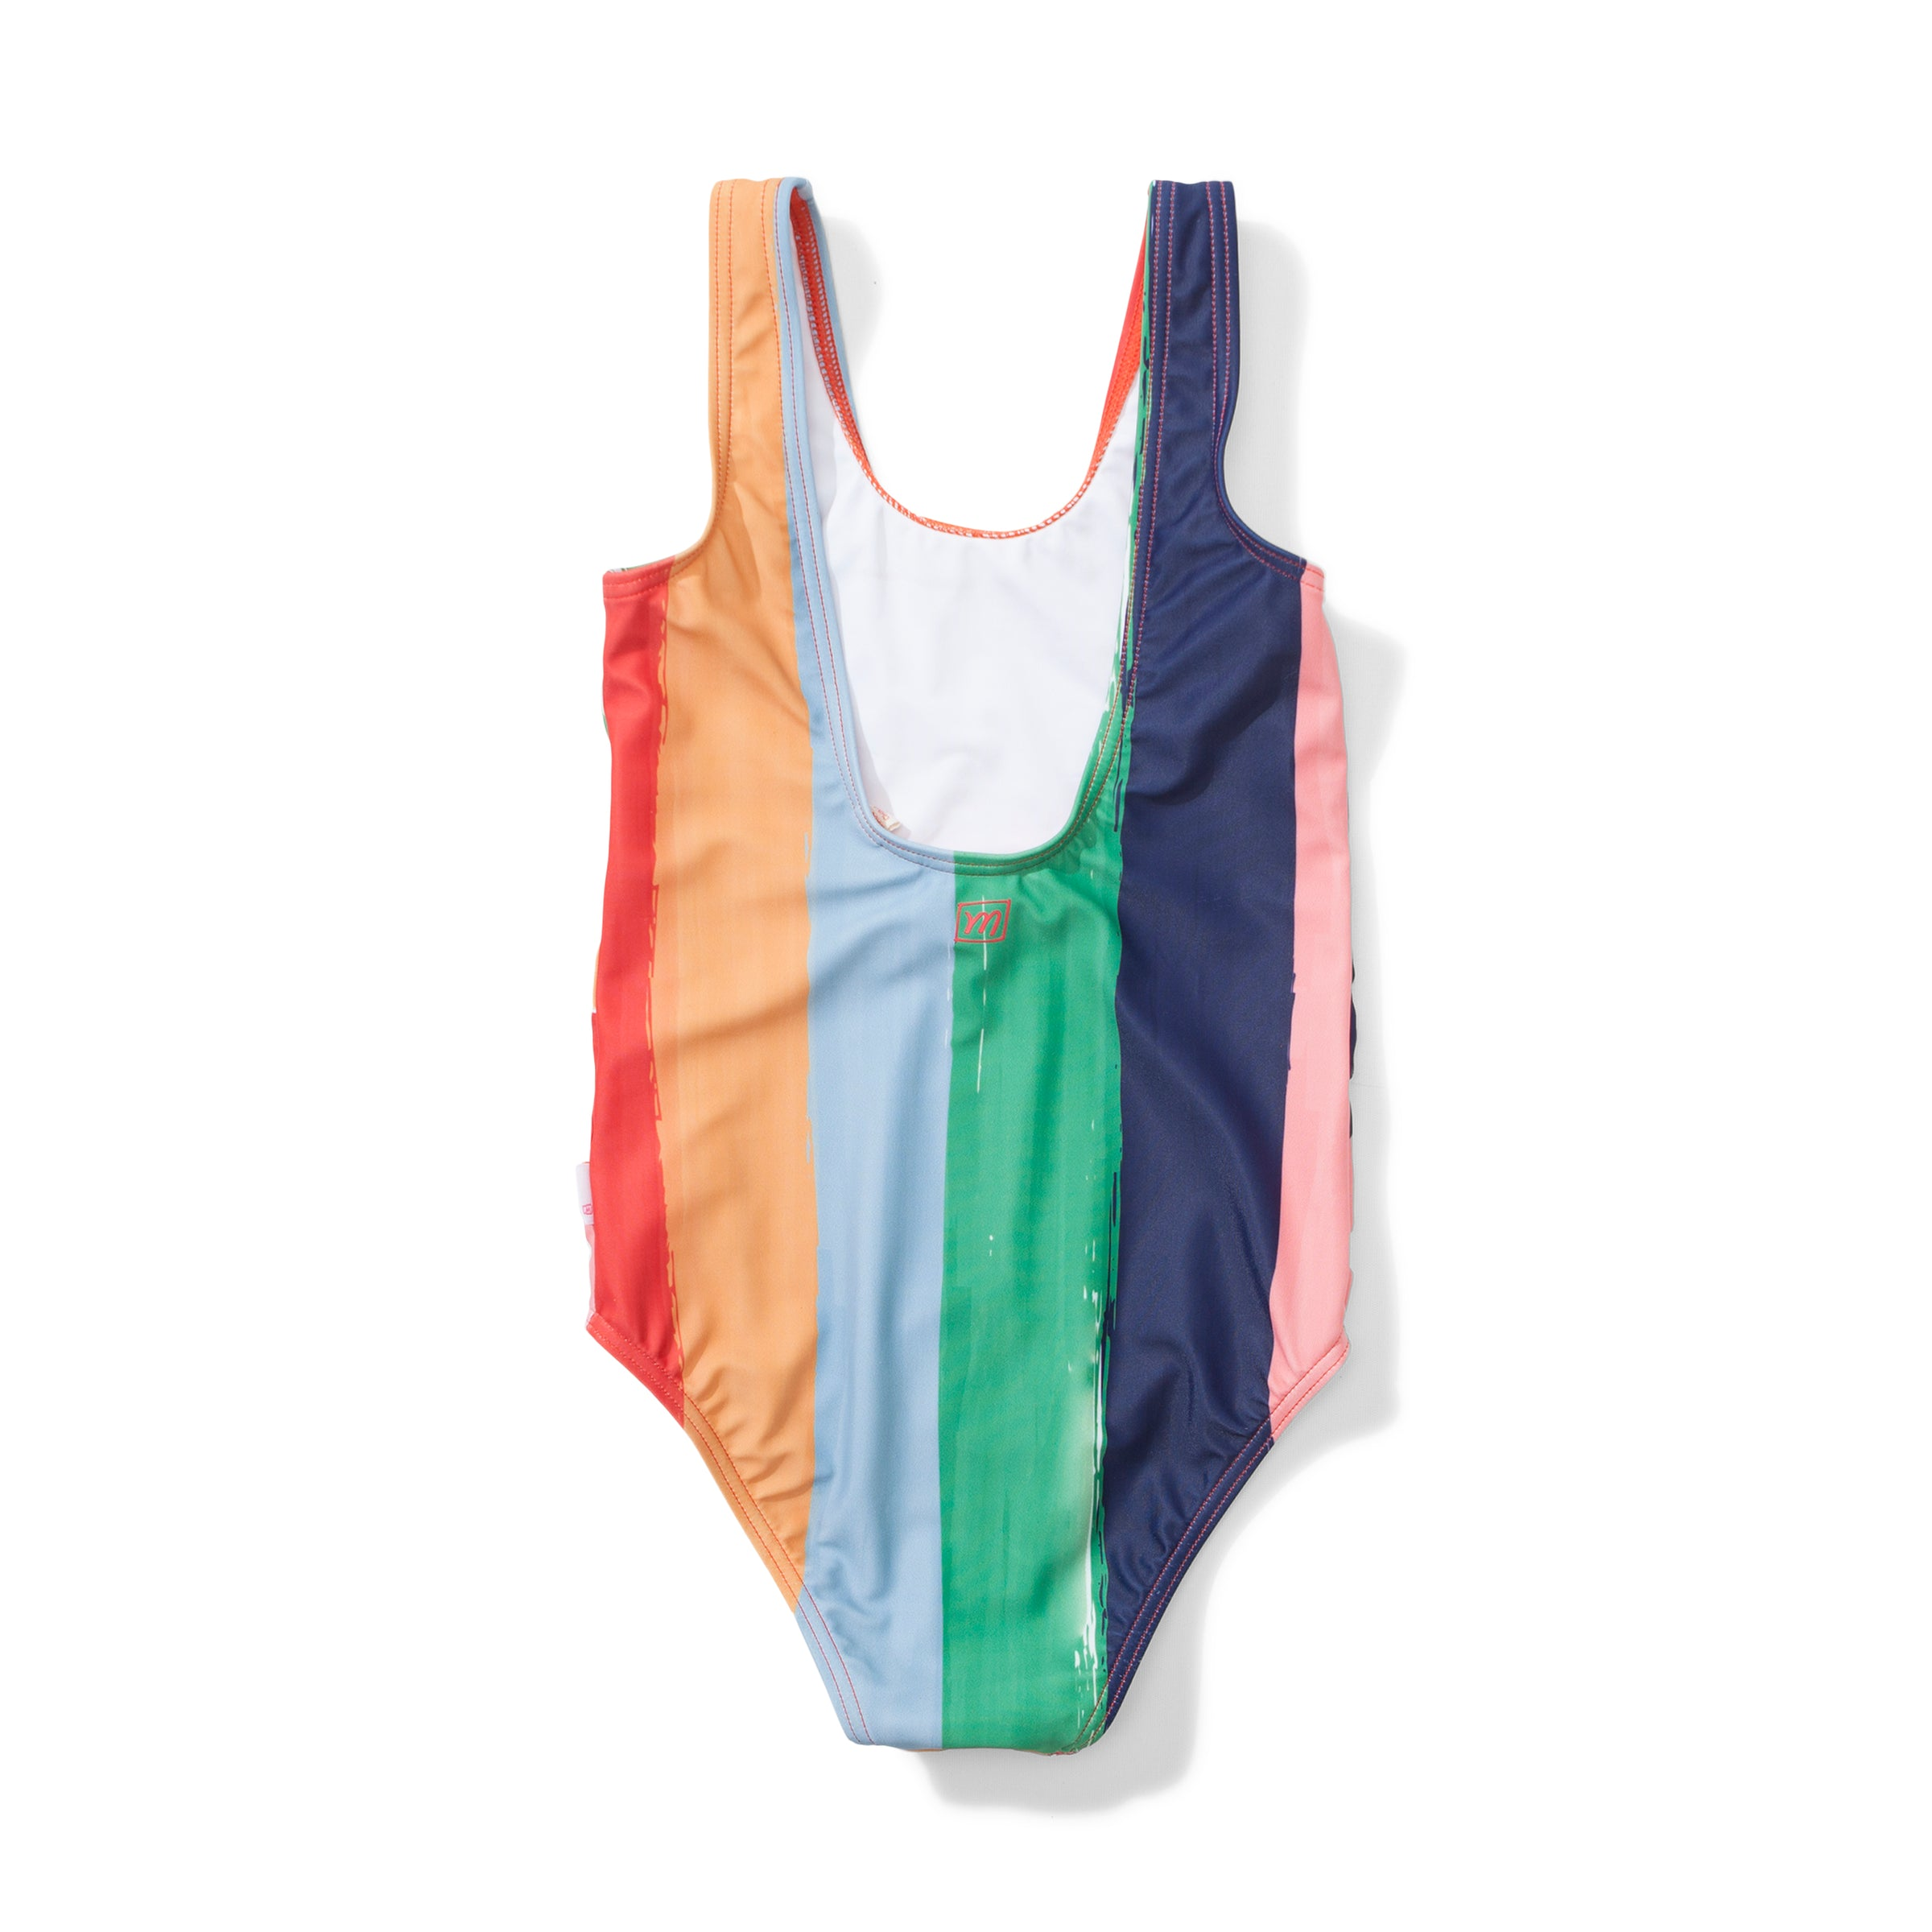 6211f735b1ef8 Missie Munster - Sunshine One Piece - Rainbow Stripe summer girls swimwear  fashion